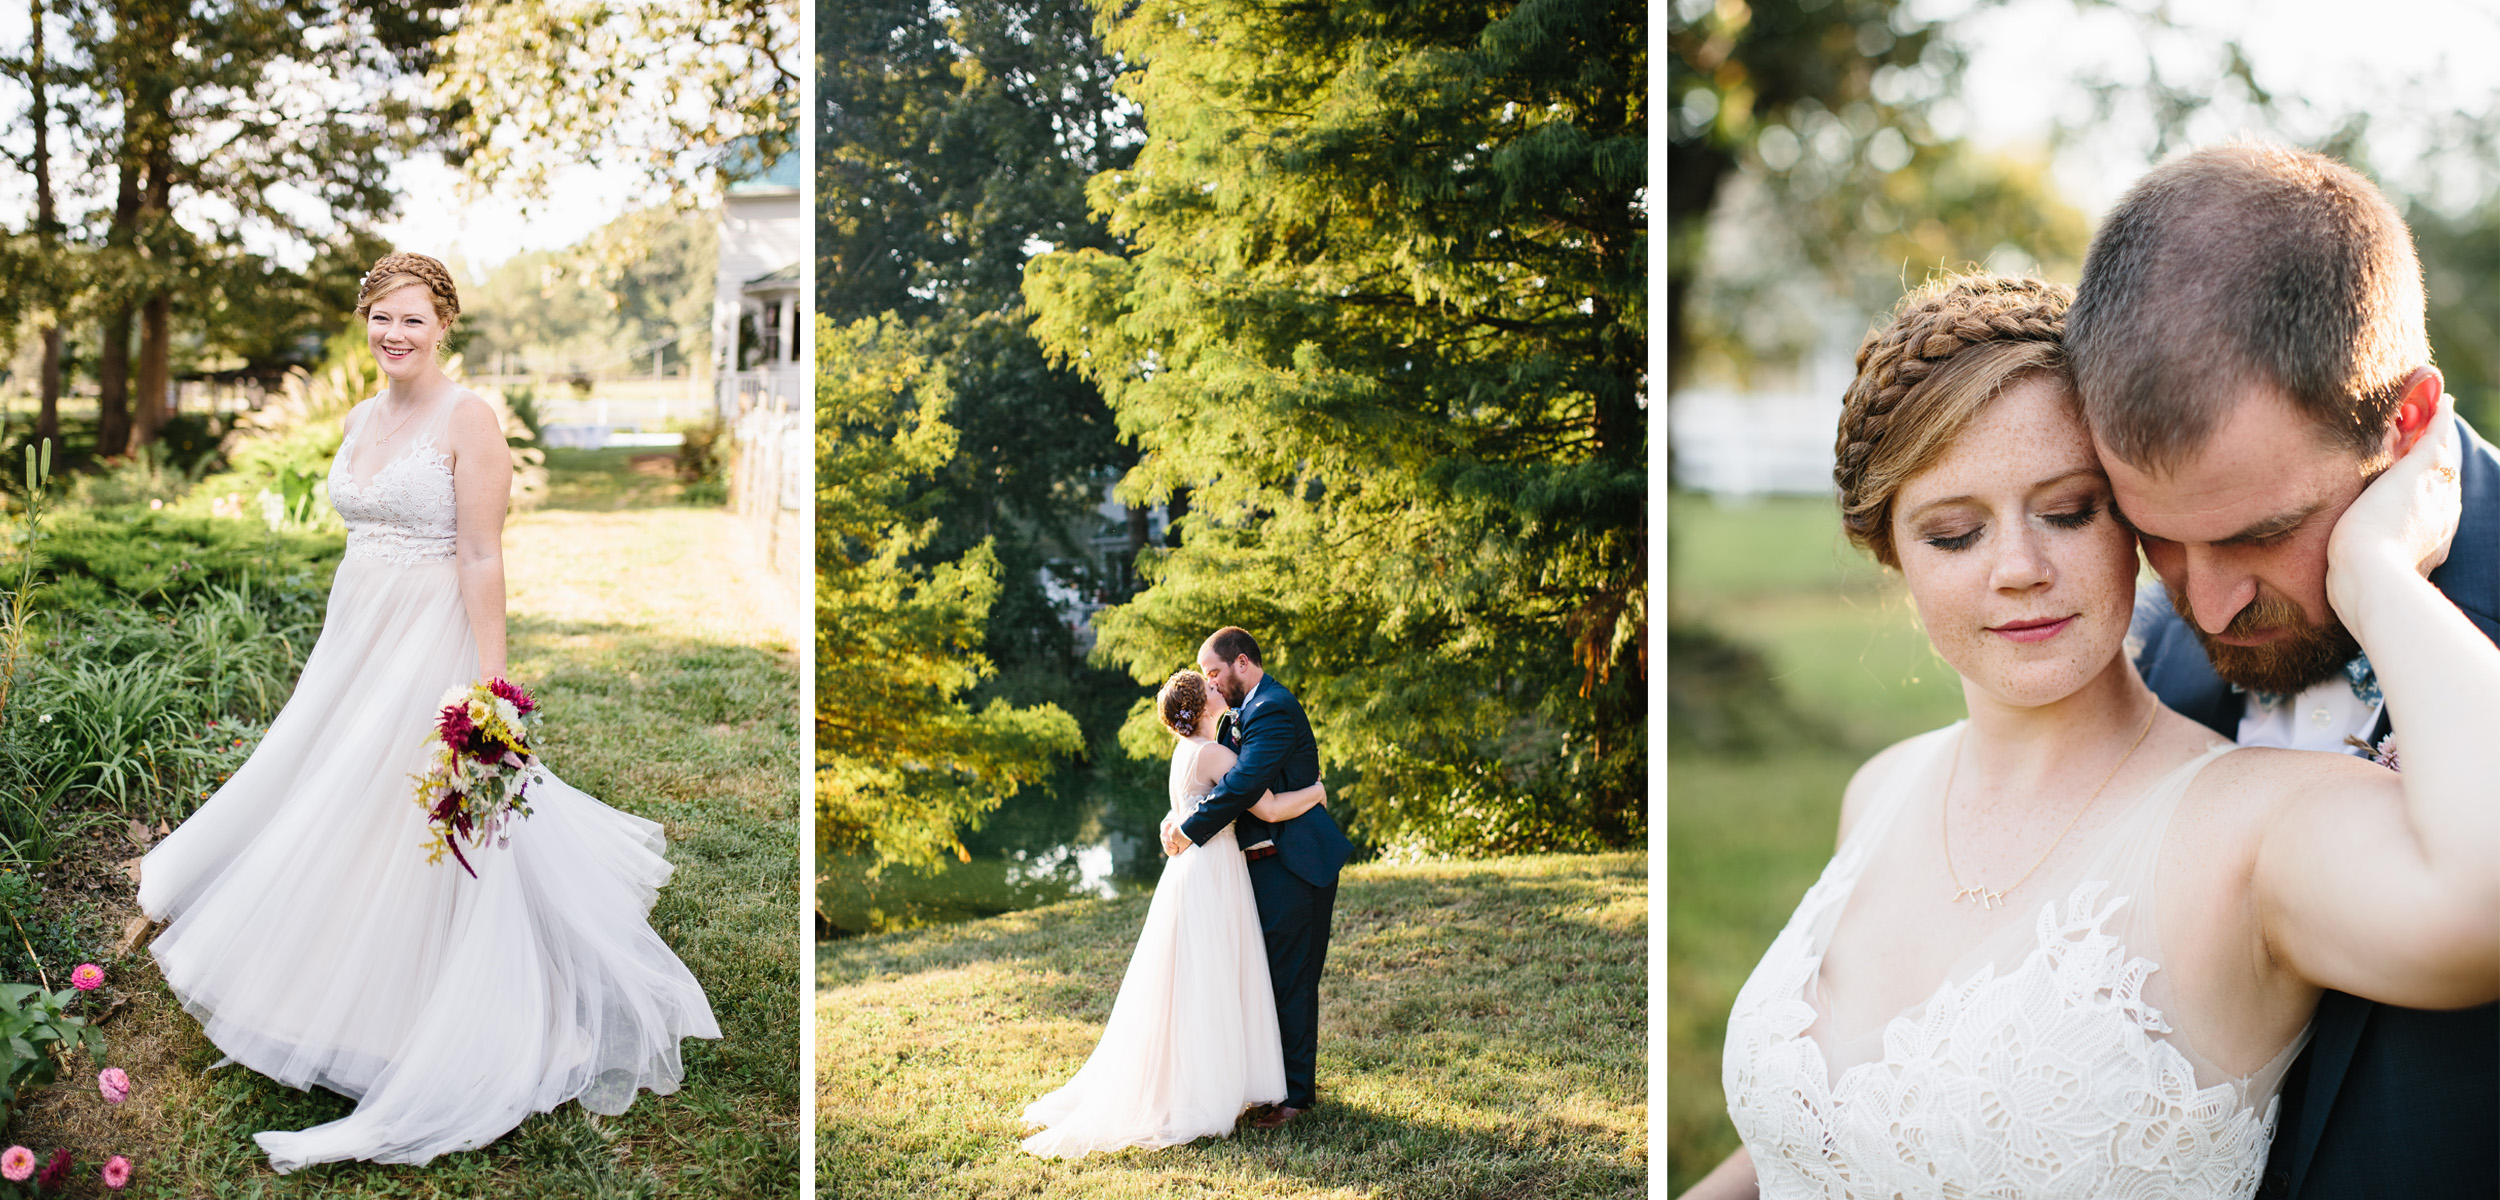 backyard wedding. fall wedding. raleigh wedding photographer. wake forest wedding photographer. raleigh photographer. wildflower wedding.jpg